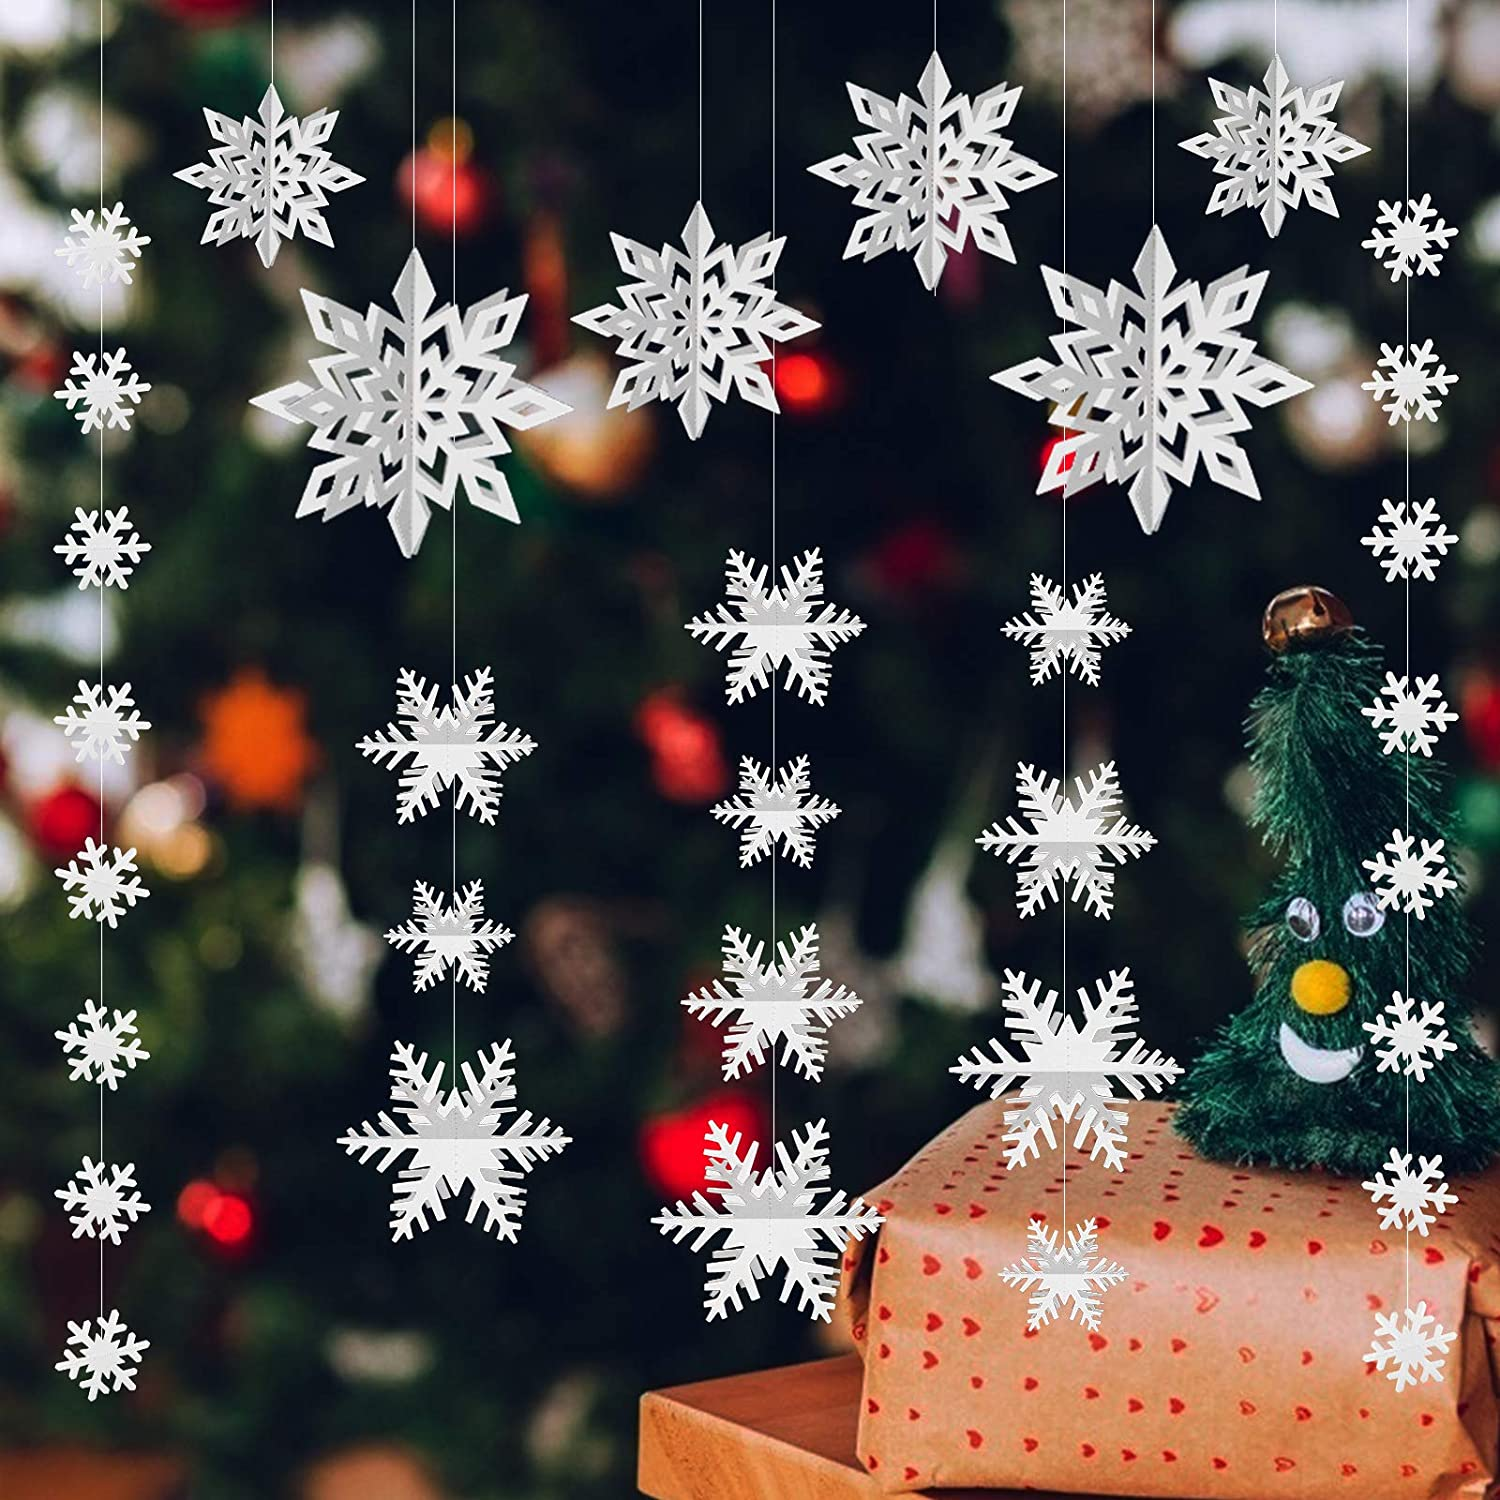 LOVESTOWN 76 Pcs Snowflake Ornament, Winter Christmas Hanging Snowflake Decorations 3D Glittery Large White Snowflake for Christmas Winter Wonderland Holiday New Year Party Home Decorations